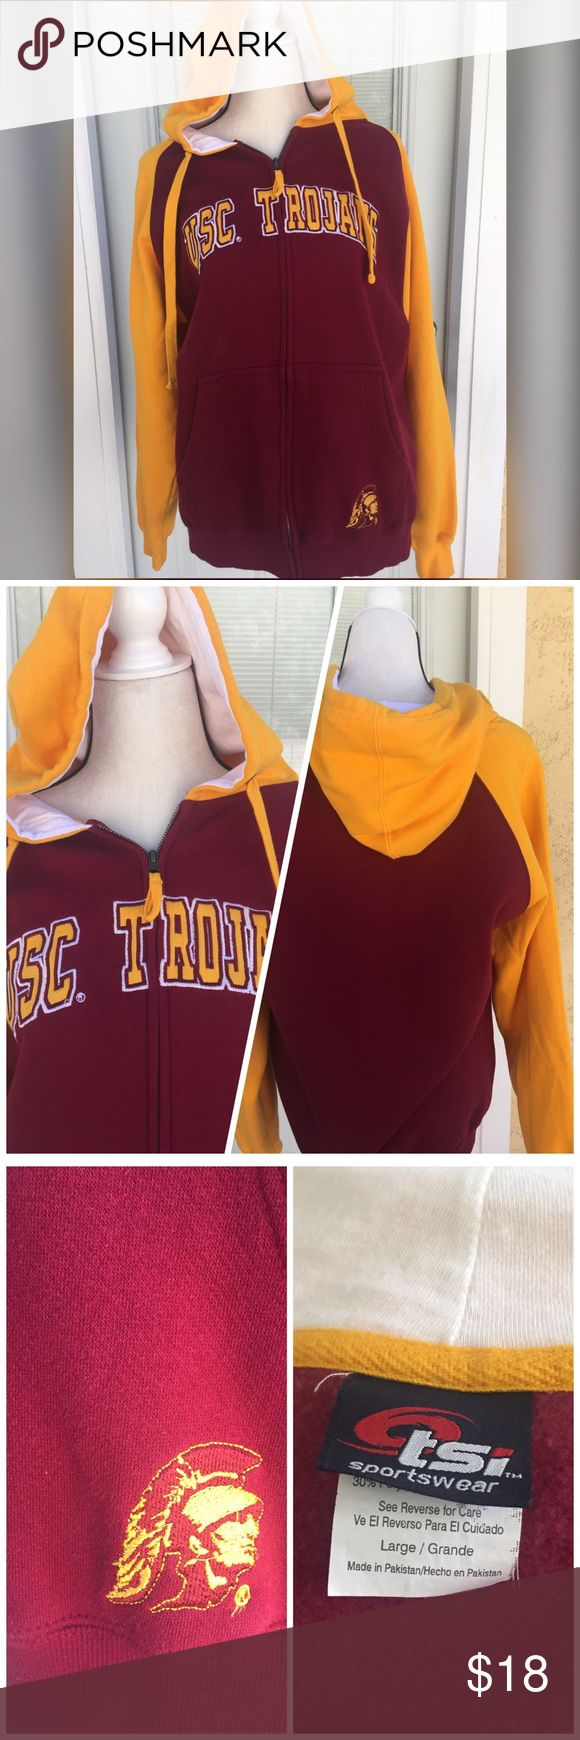 💥💥Hoodie Sweatshirt 💥💥 Stay warm and show off you USC TROJAN hoodie. Soft fleece inside. Hood with drawstring. Embroidered appliqué. Full zipper. 70% cotton 30% polyester. Good condition💥💥💥💥👍🏼 Tops Sweatshirts & Hoodies